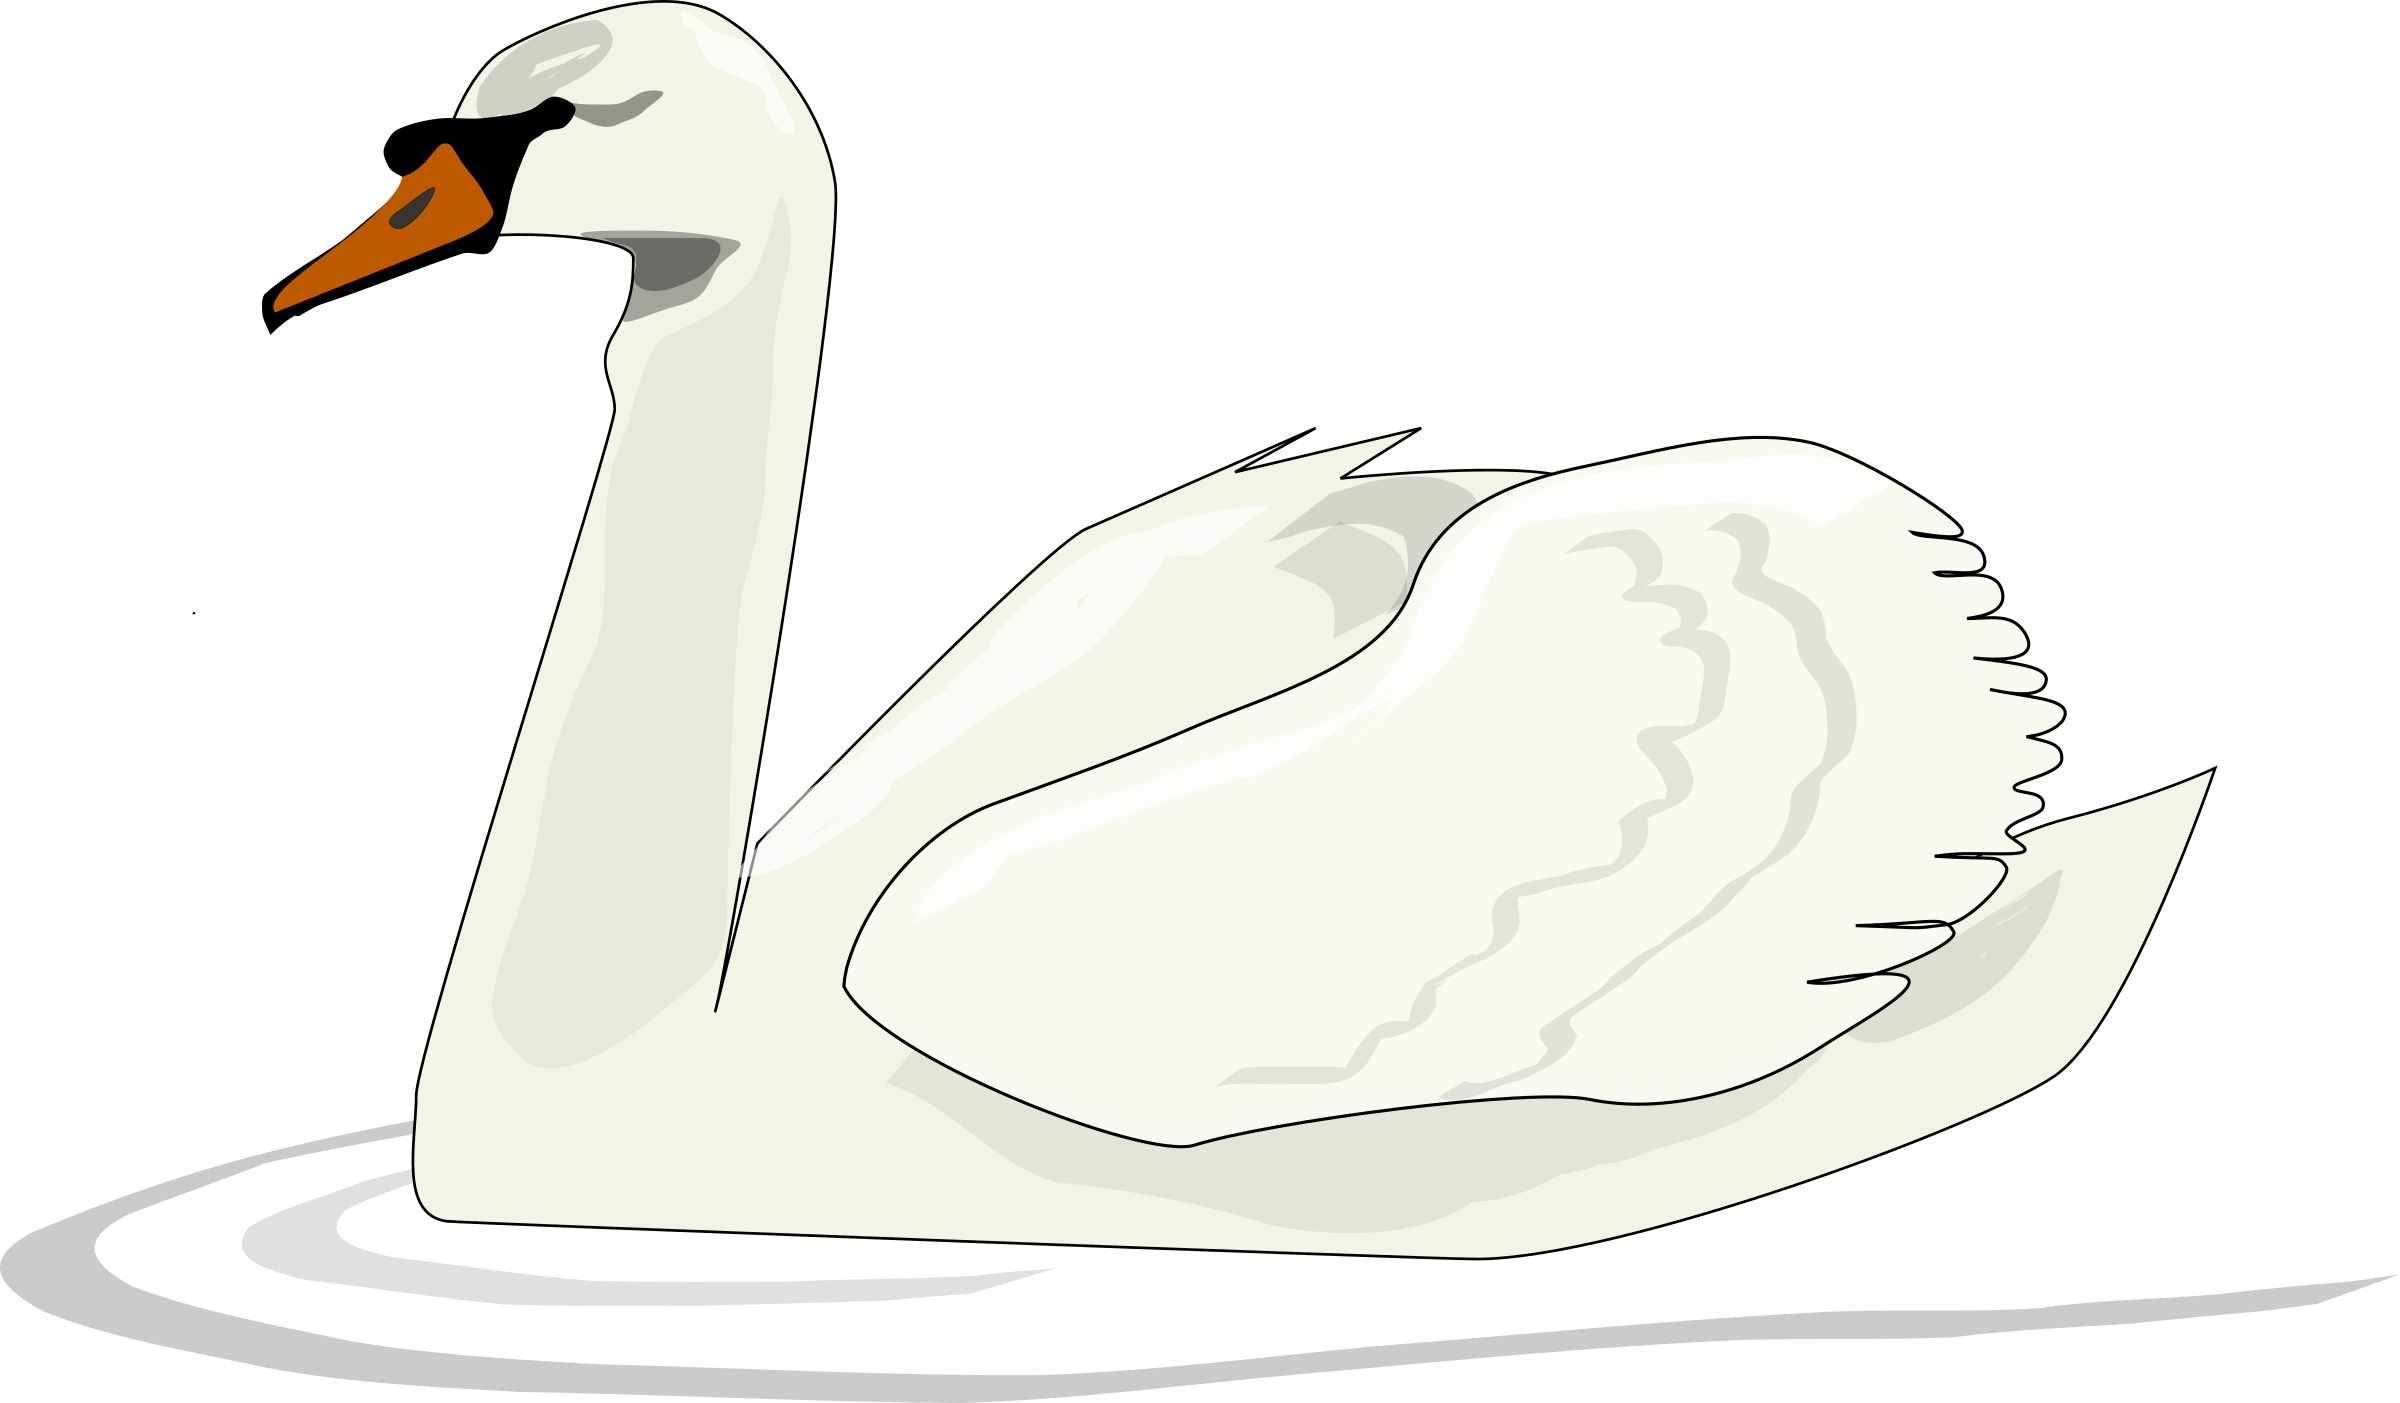 Swimming big image png. Couple clipart swan